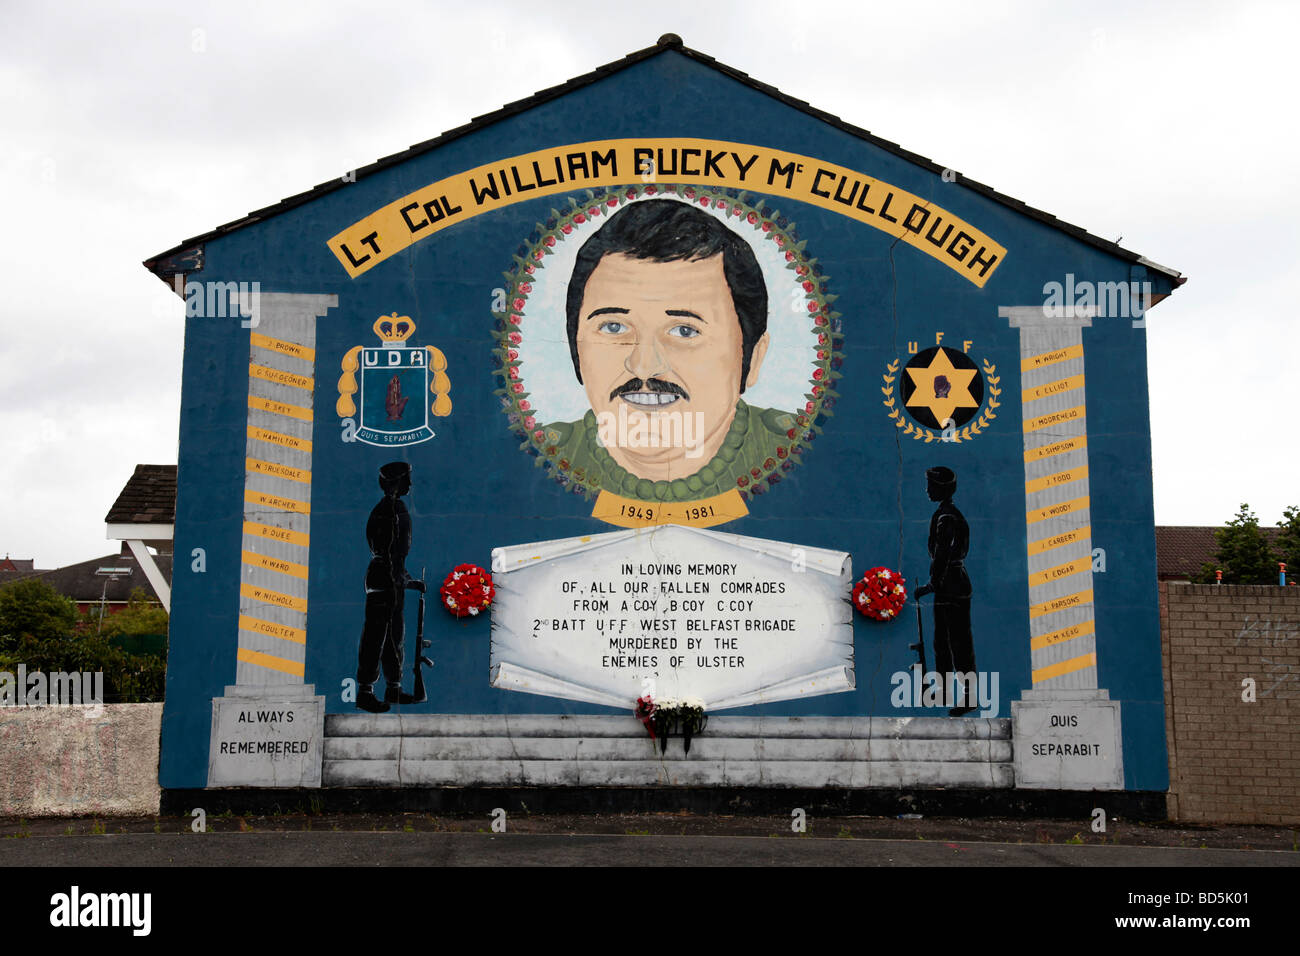 Loyalist mural in the Lower Shankill commemorating William 'Bucky' McCullough,  who was killed by the INLA - Stock Image